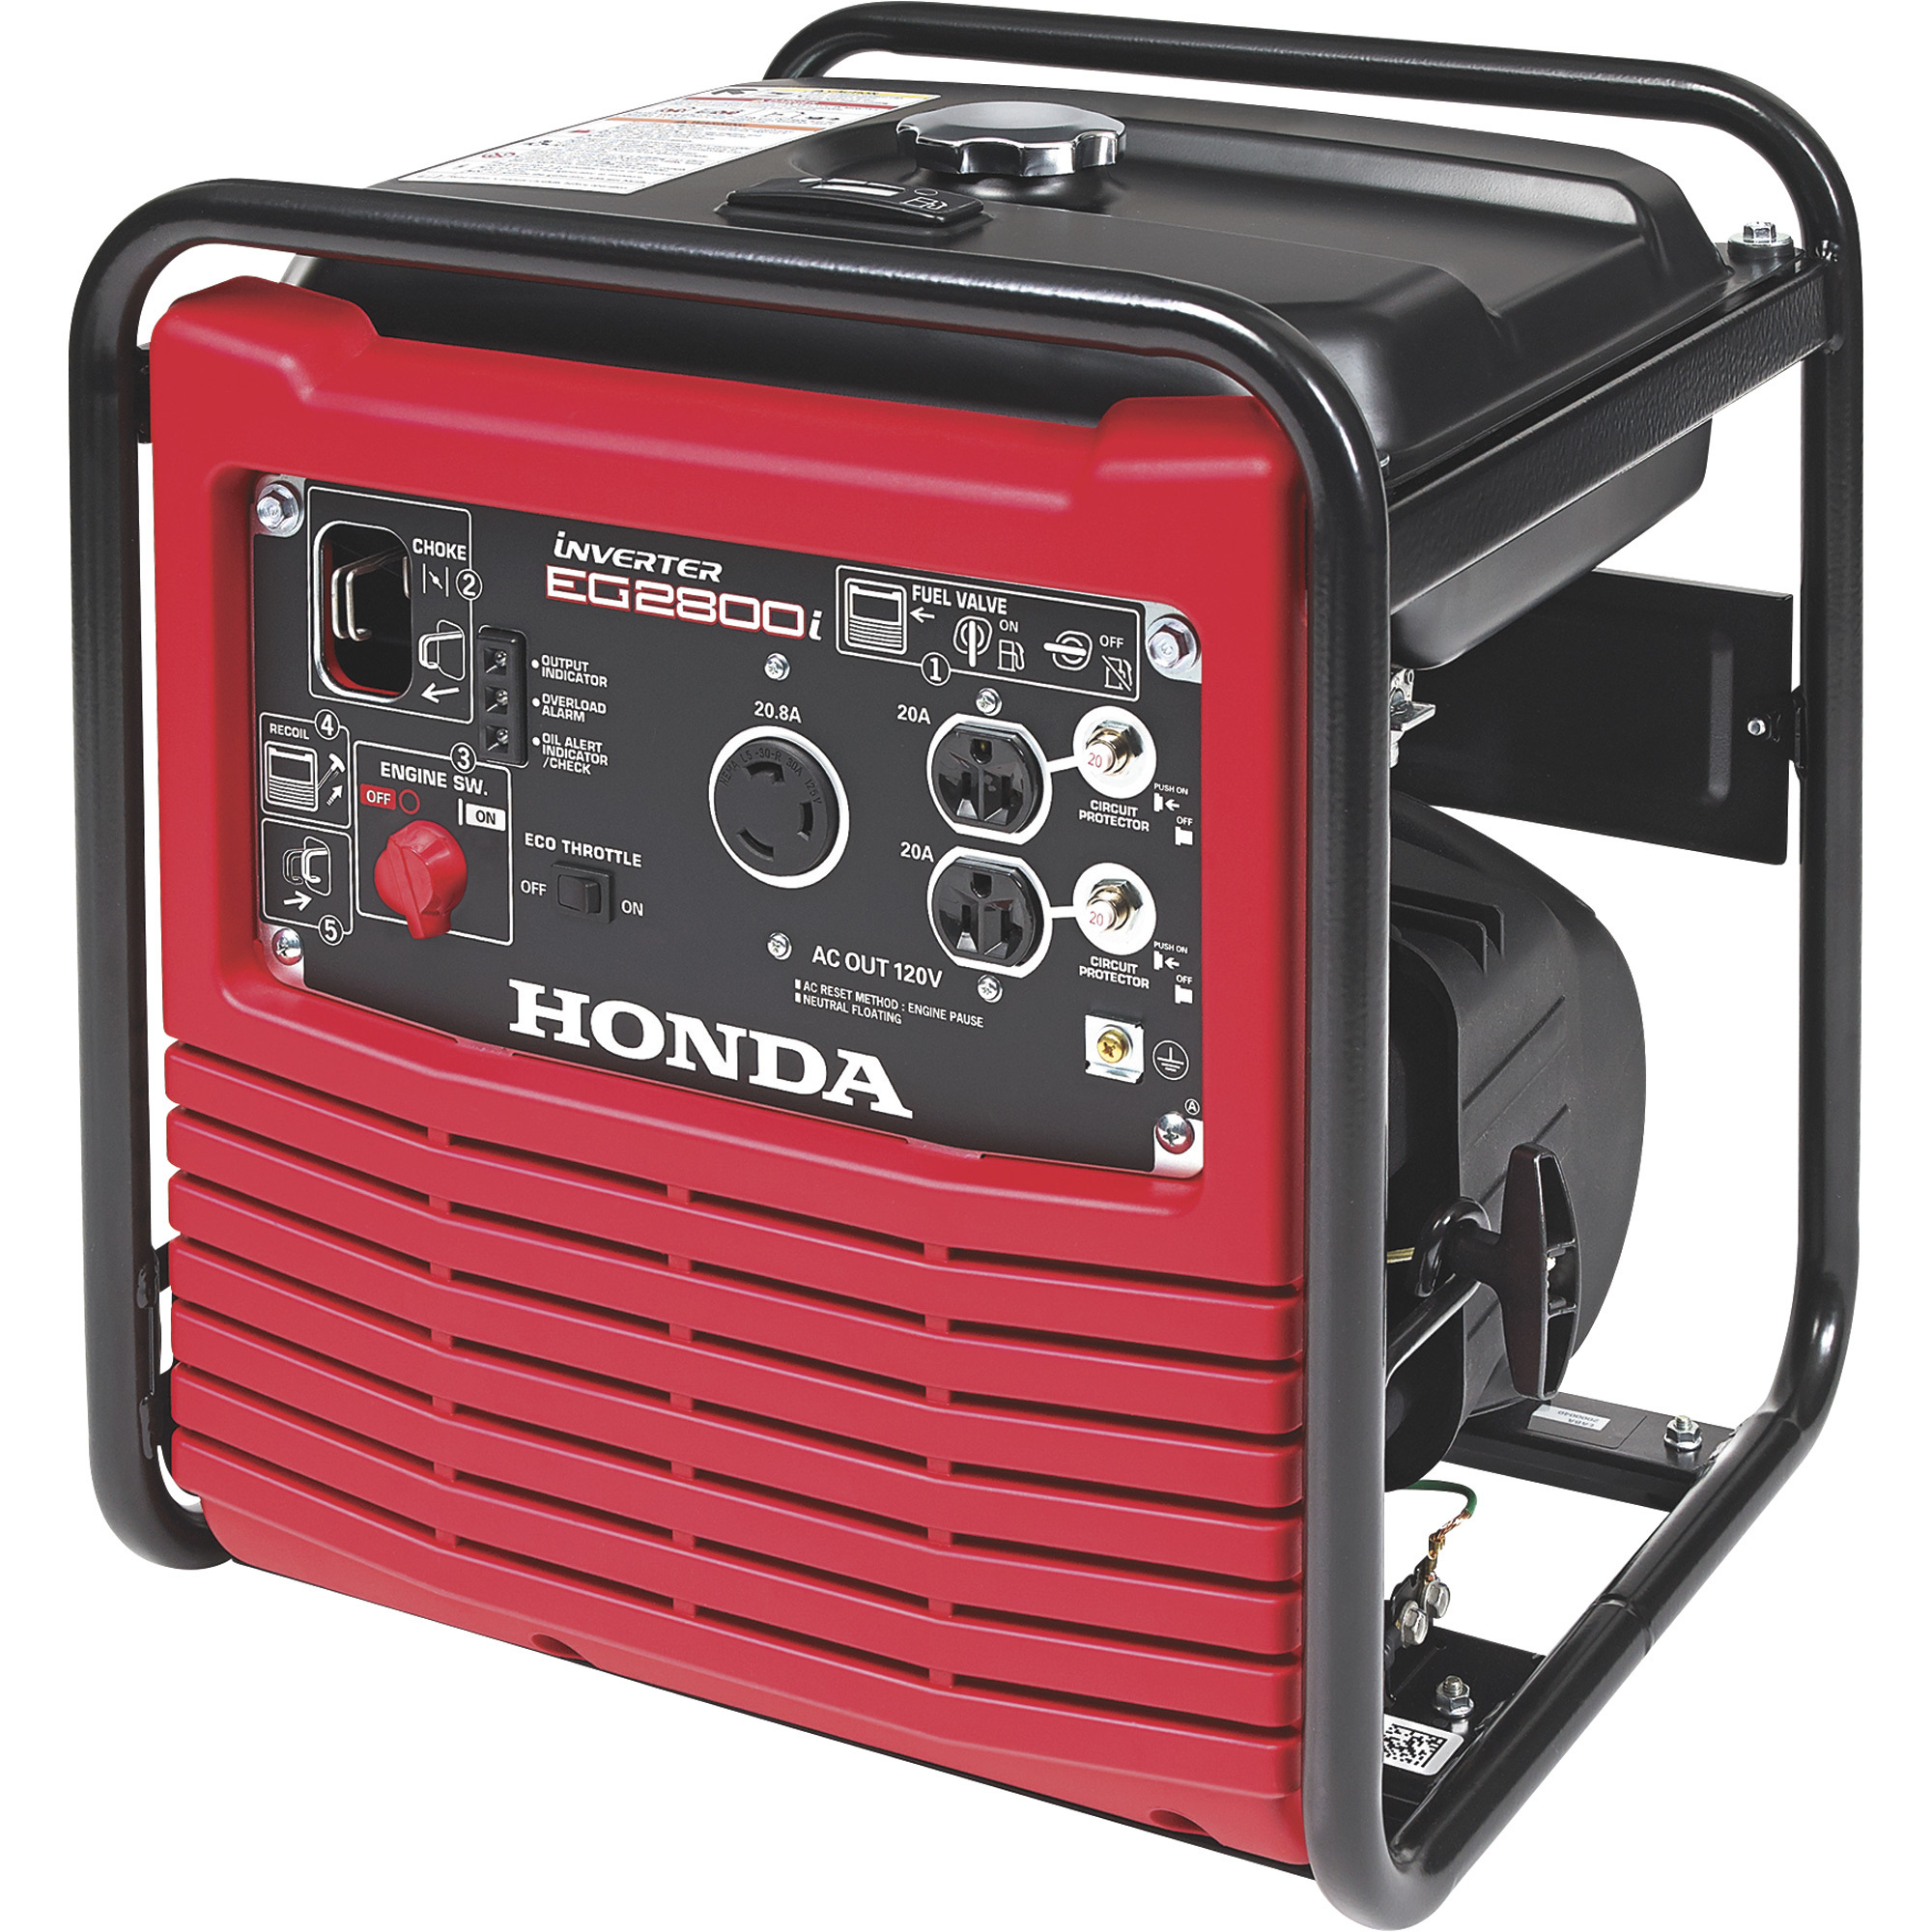 2800 Watt Inverter/Generator $40/day $120/week